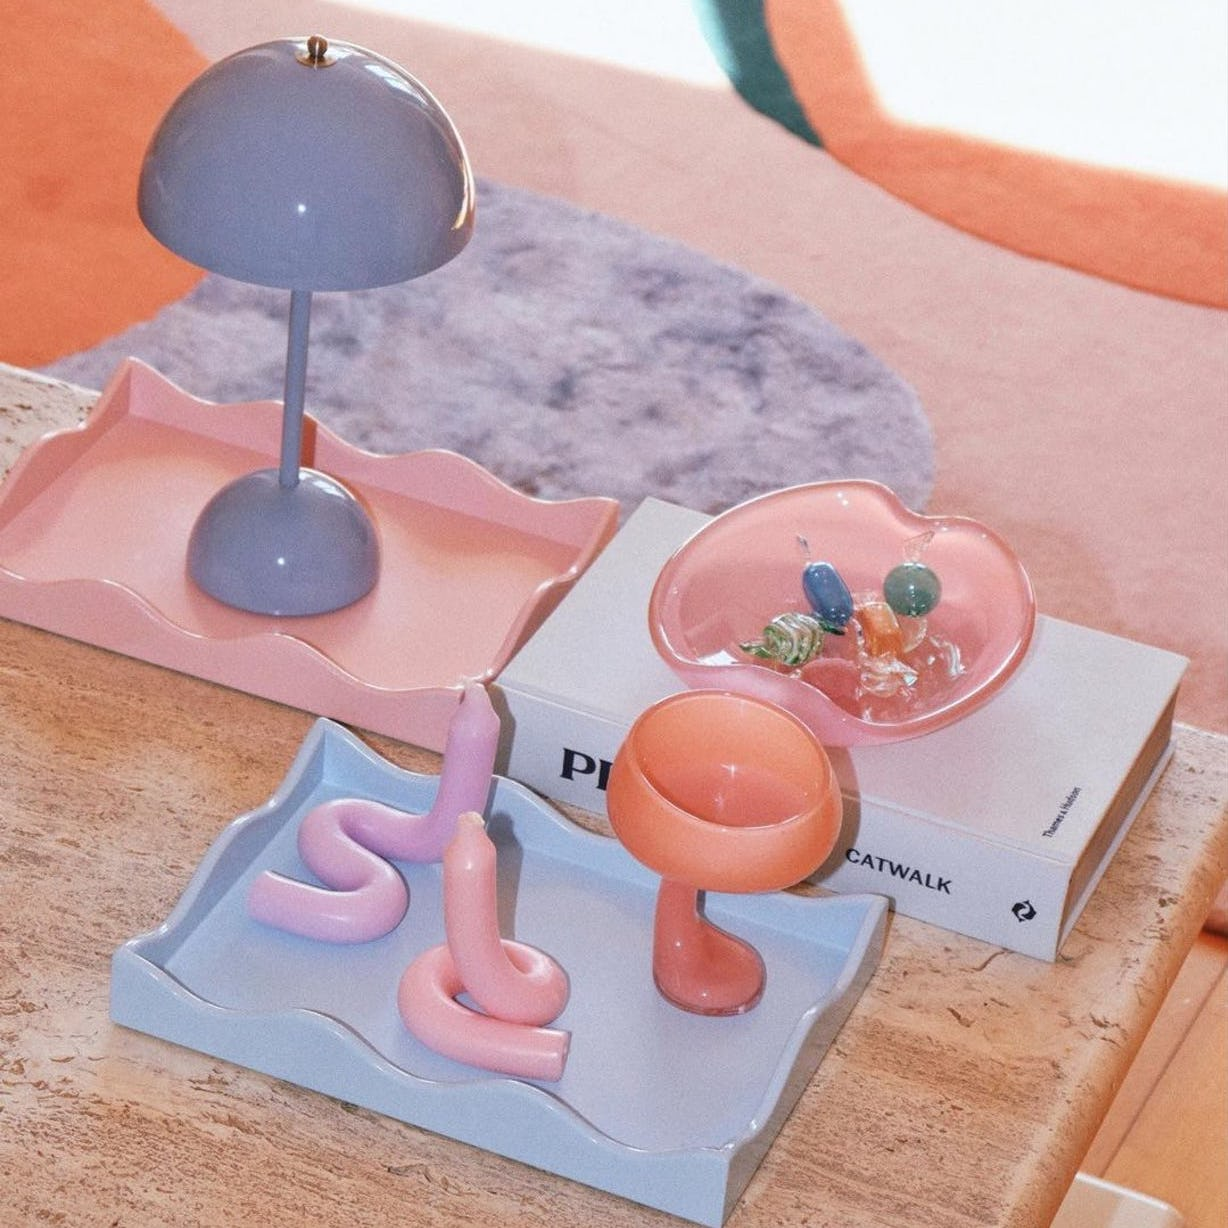 This Designer-Approved Home Decor Trend Is Going Viral On TikTok